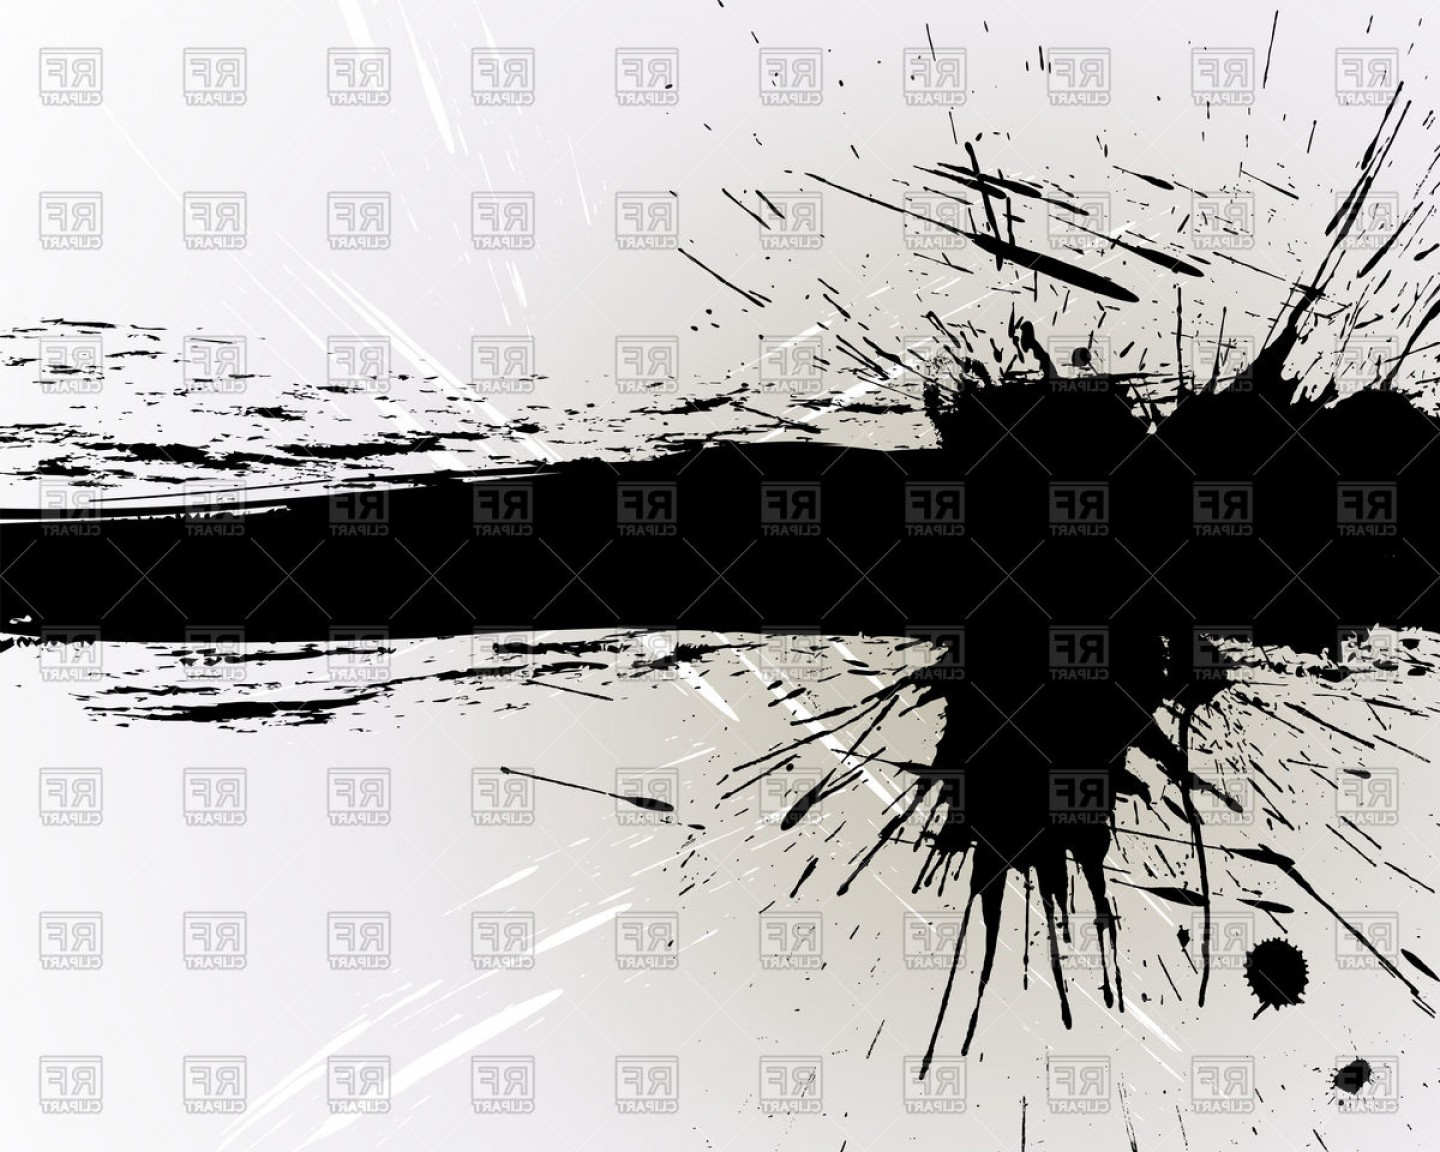 Abstract grunge clipart royalty free download Abstract Grunge Black Banner Vector Clipart | SOIDERGI royalty free download